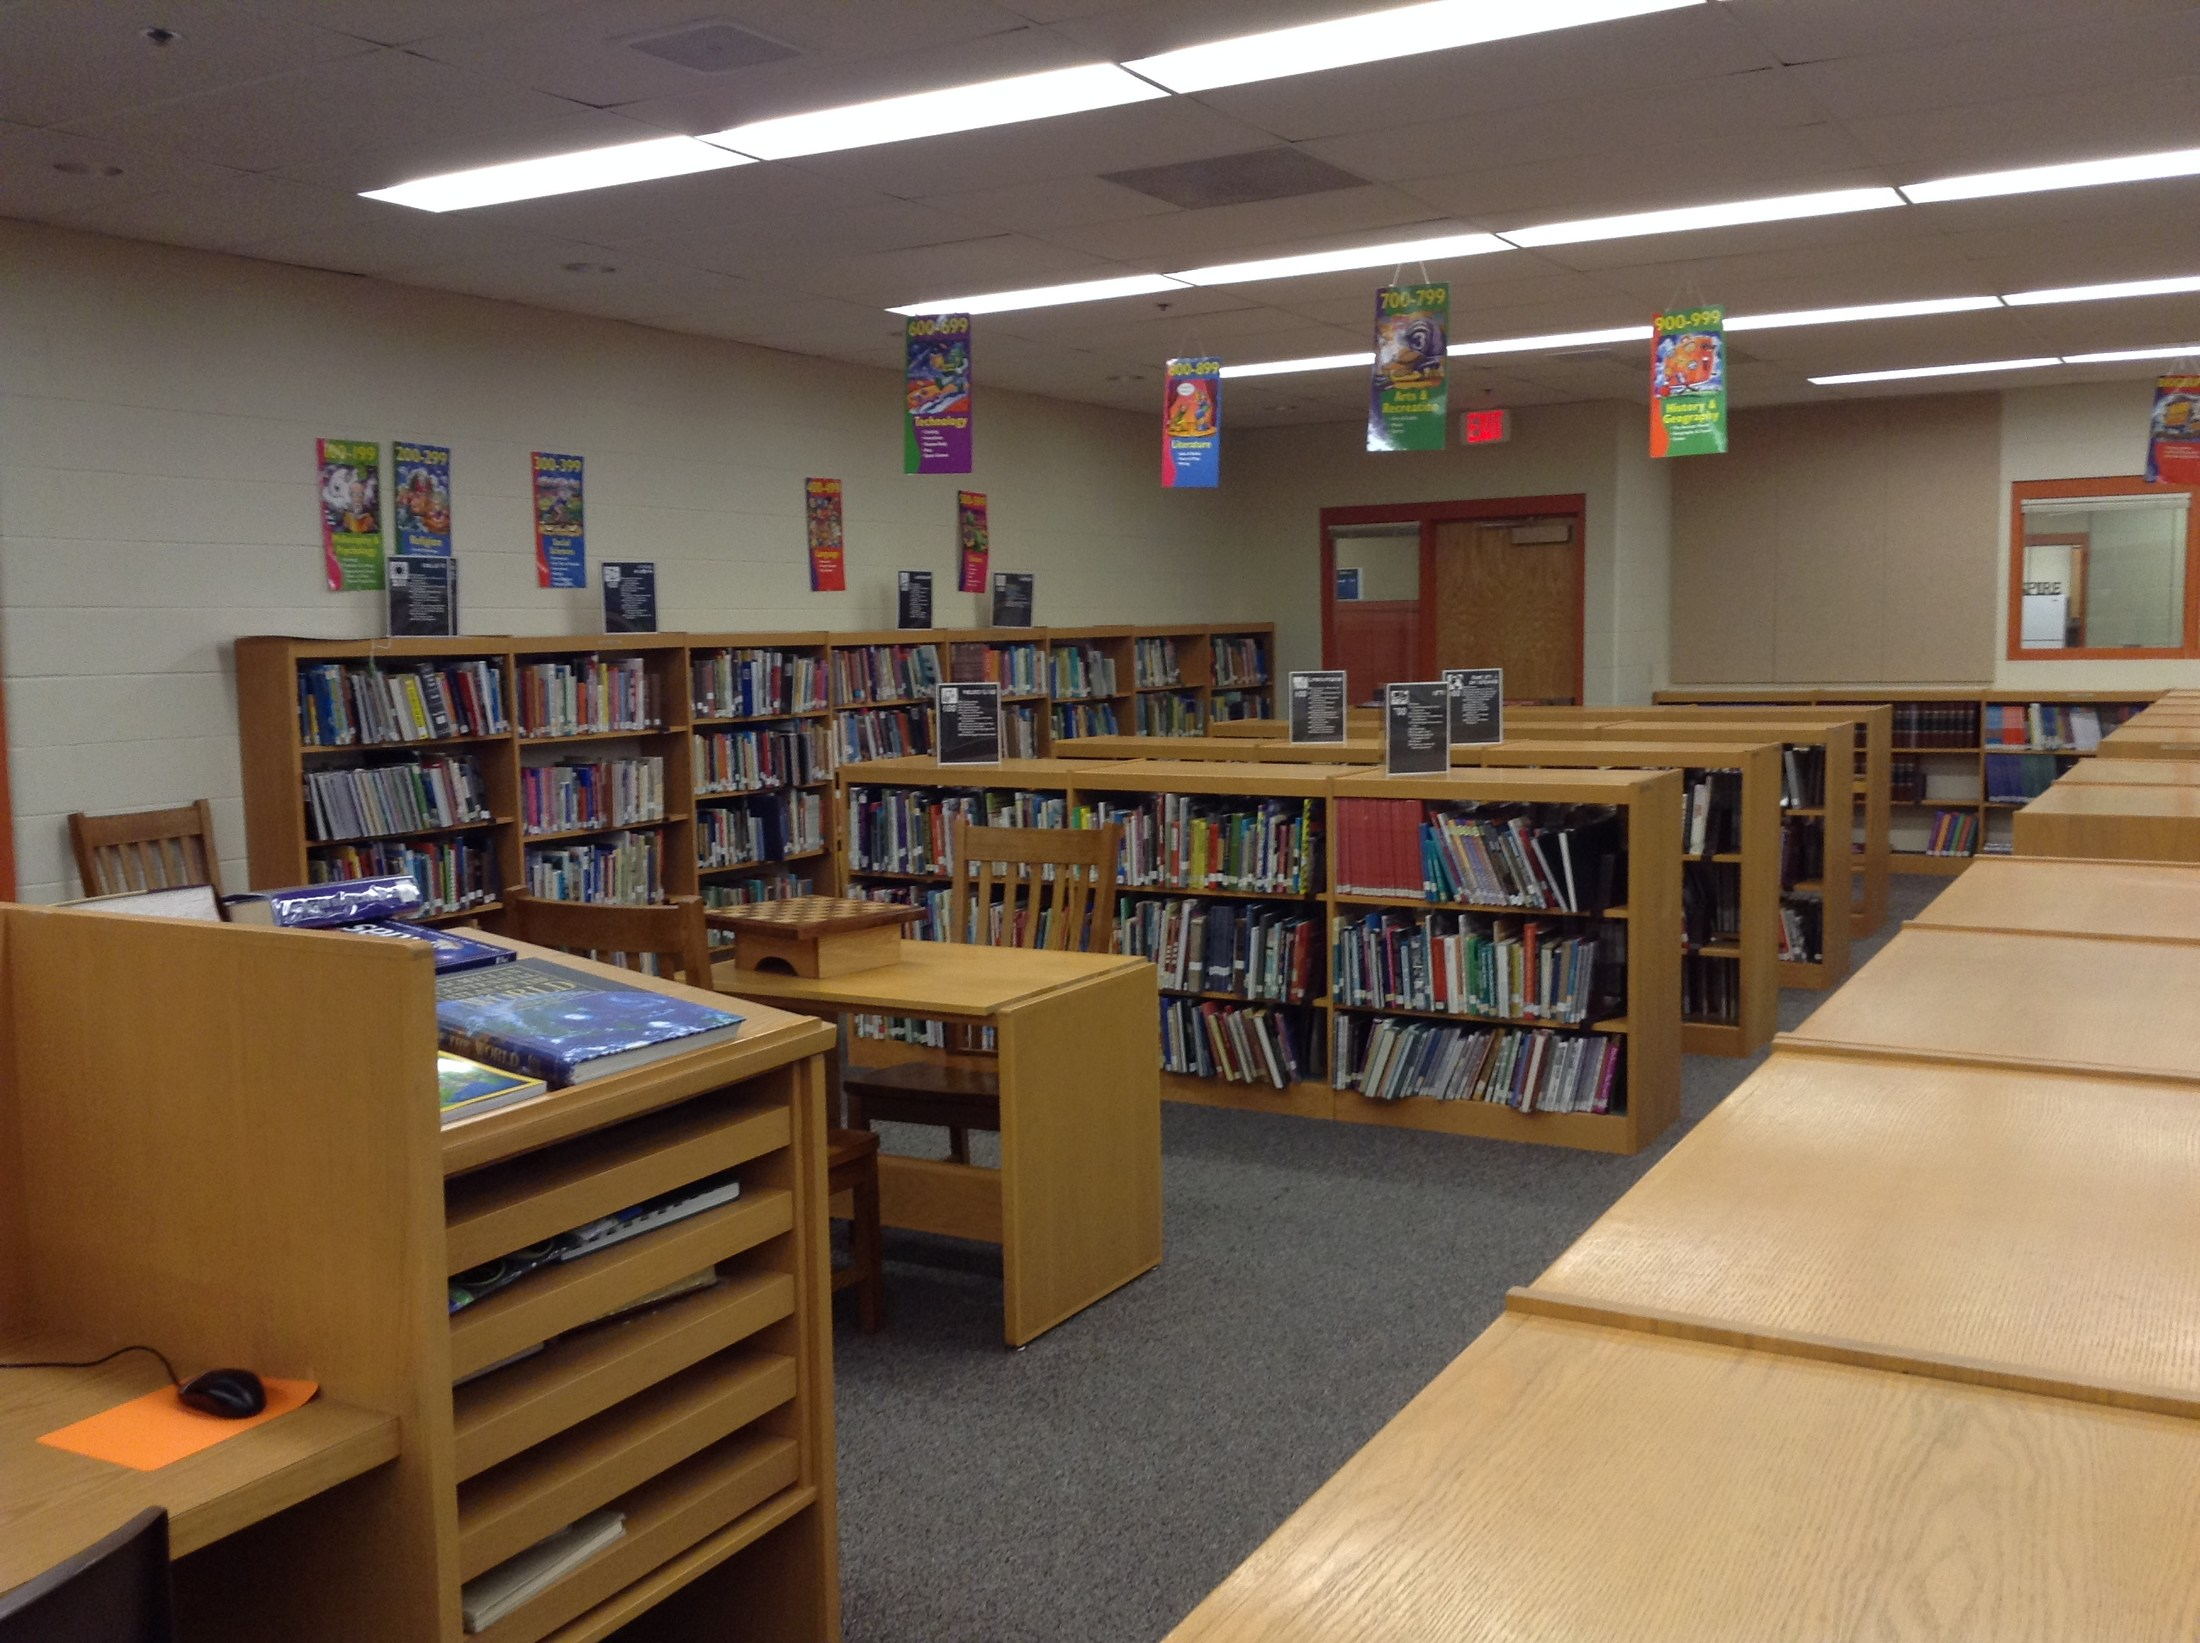 Inside the LMS library